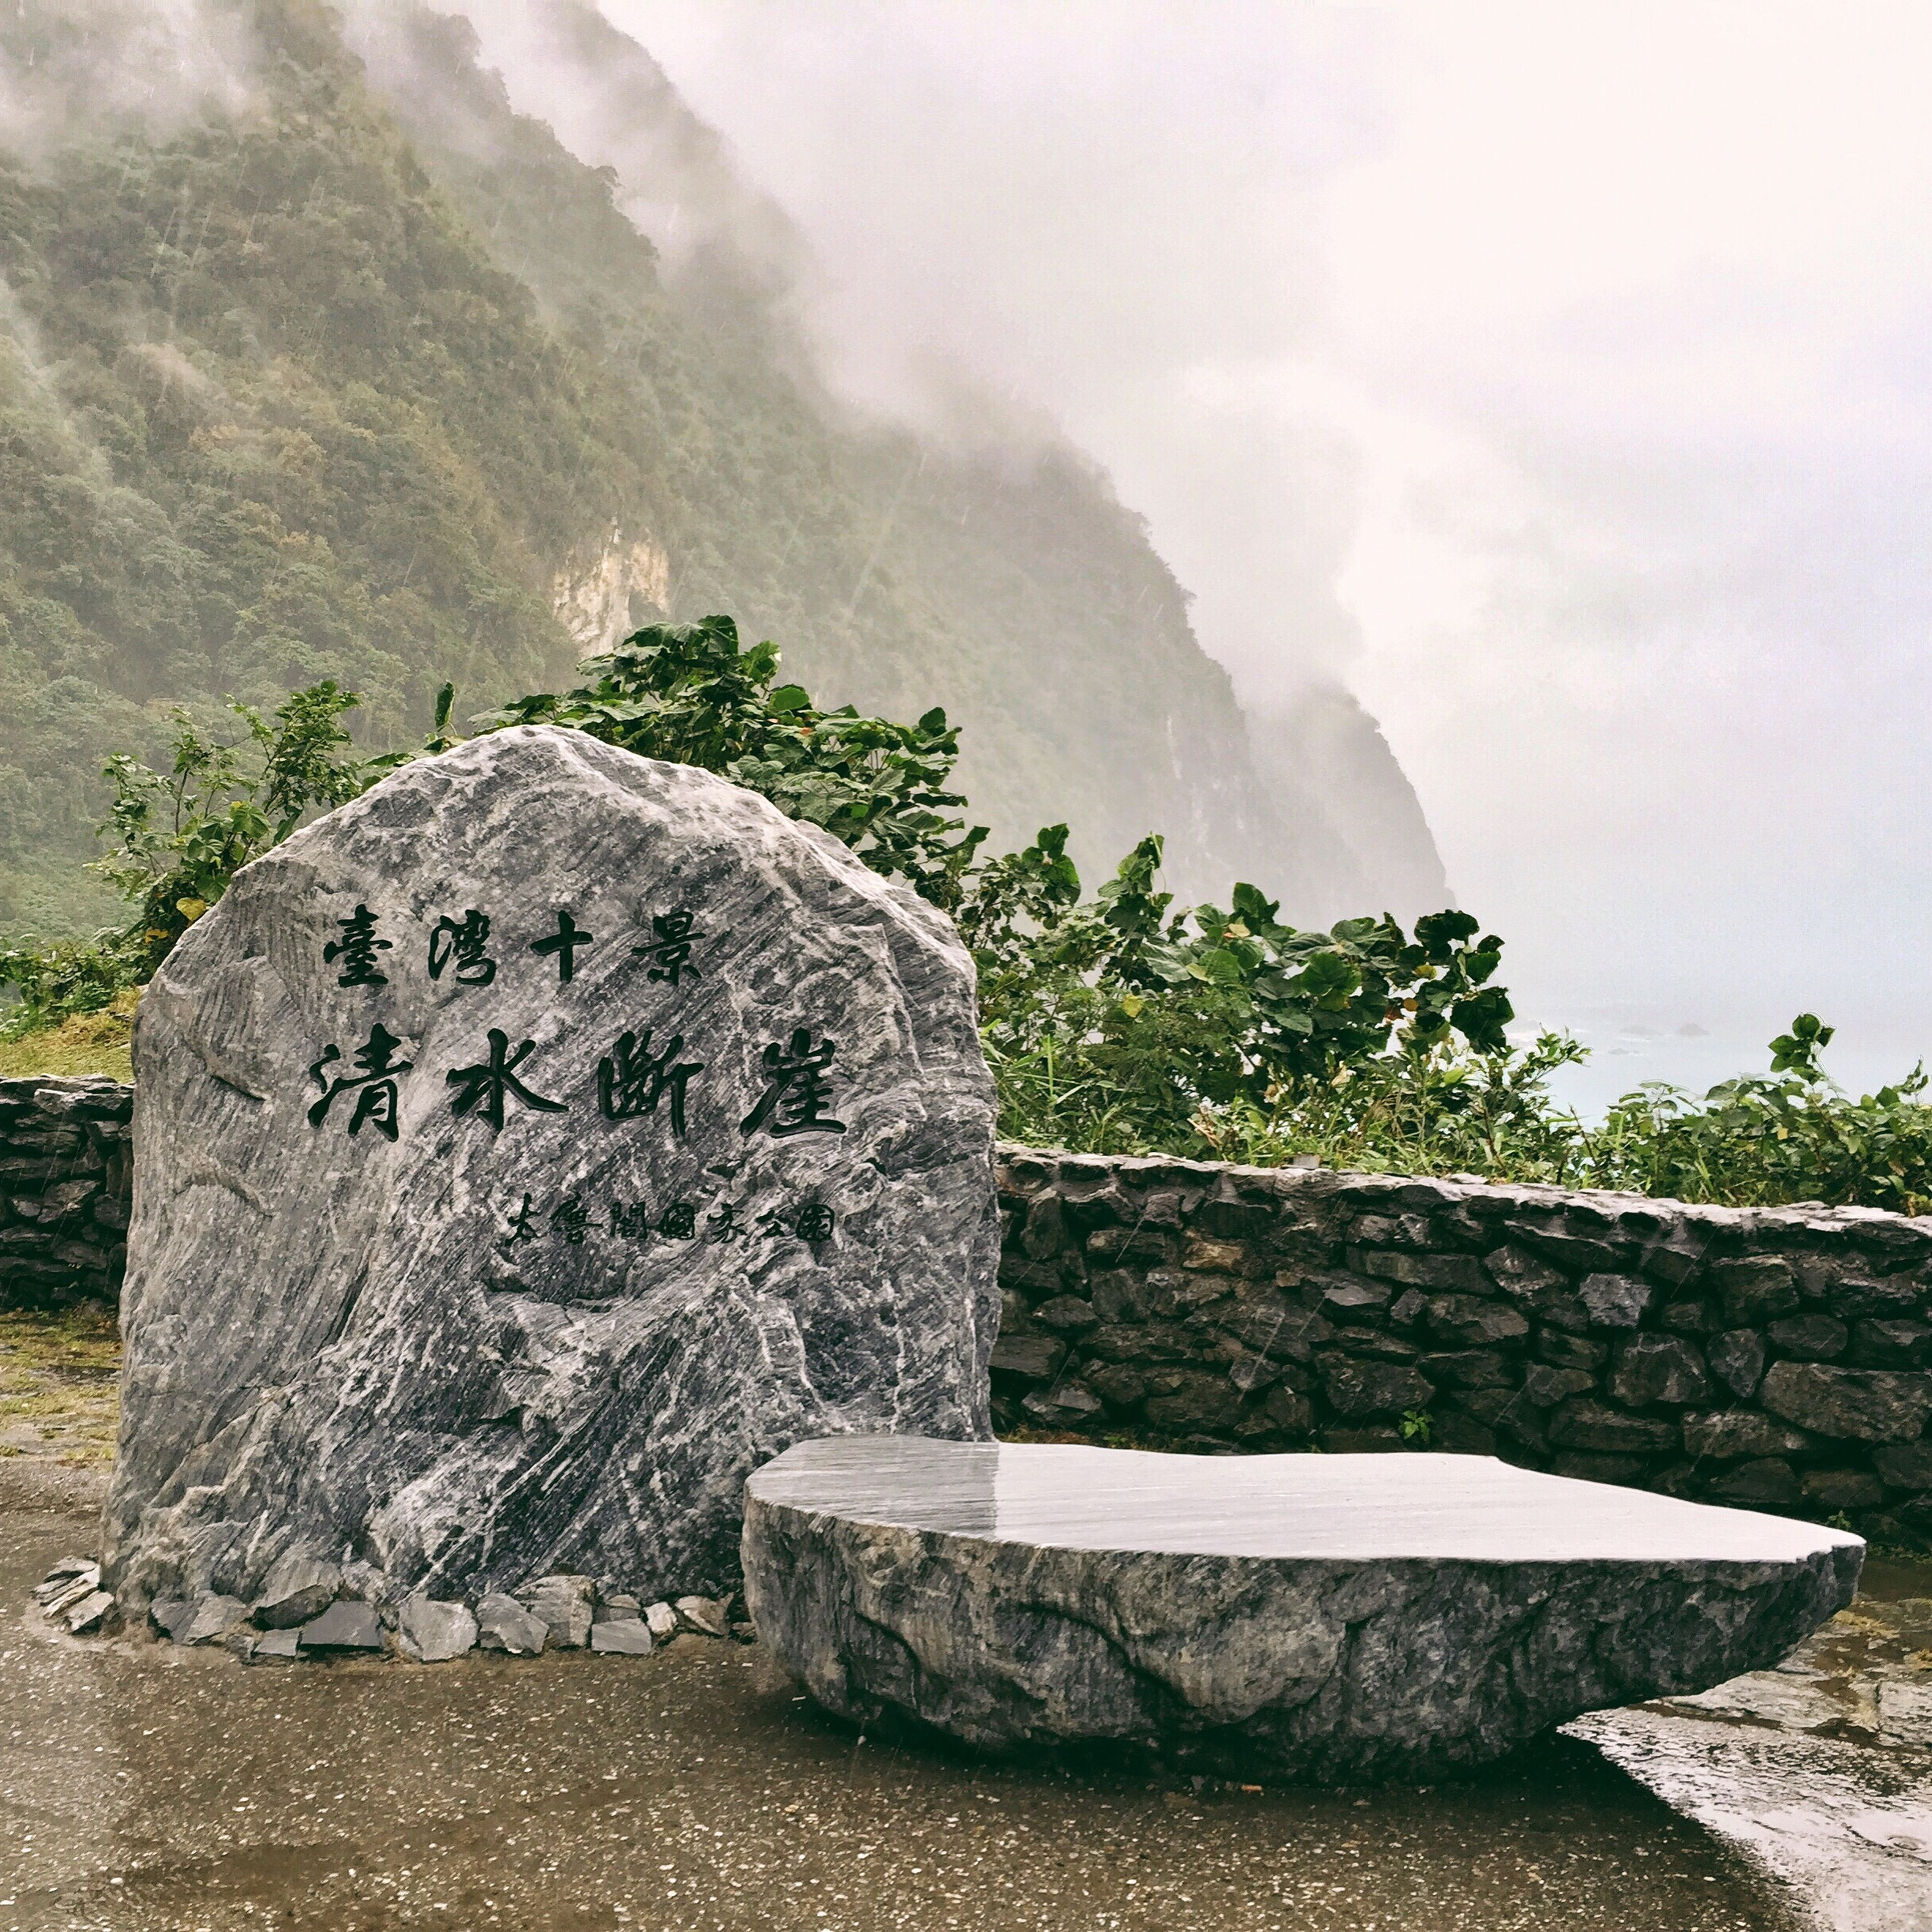 Holiday Enjoying Life Taking Photos Traveling Iphone 6 Plus Hualien Storm Beautiful Sea And Sky On A Holiday